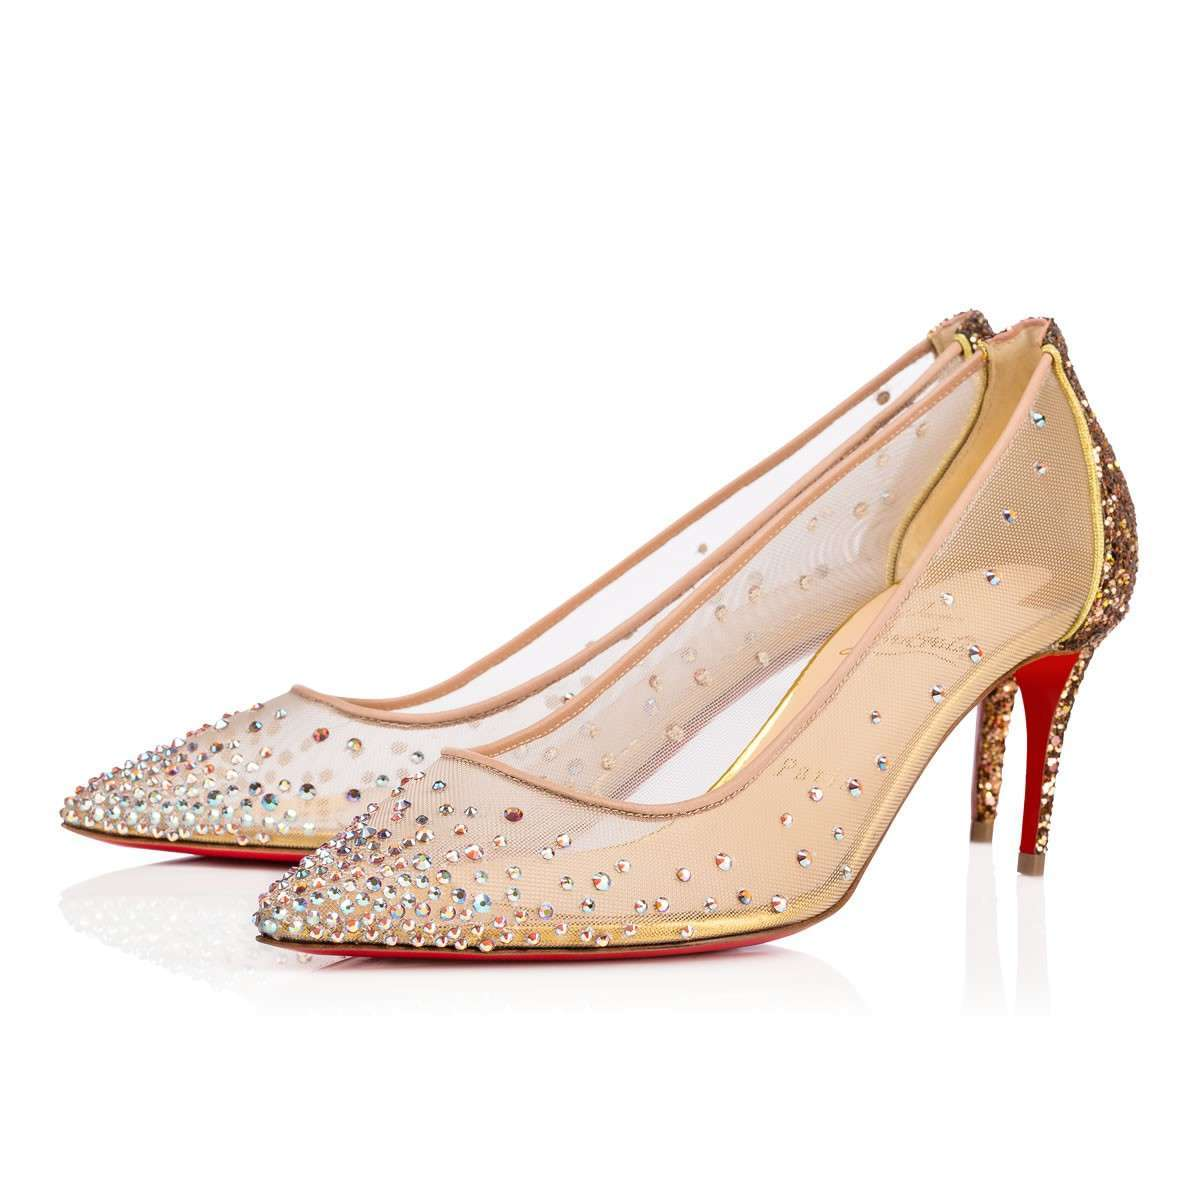 Pumps gioiello mesh Christian Louboutin